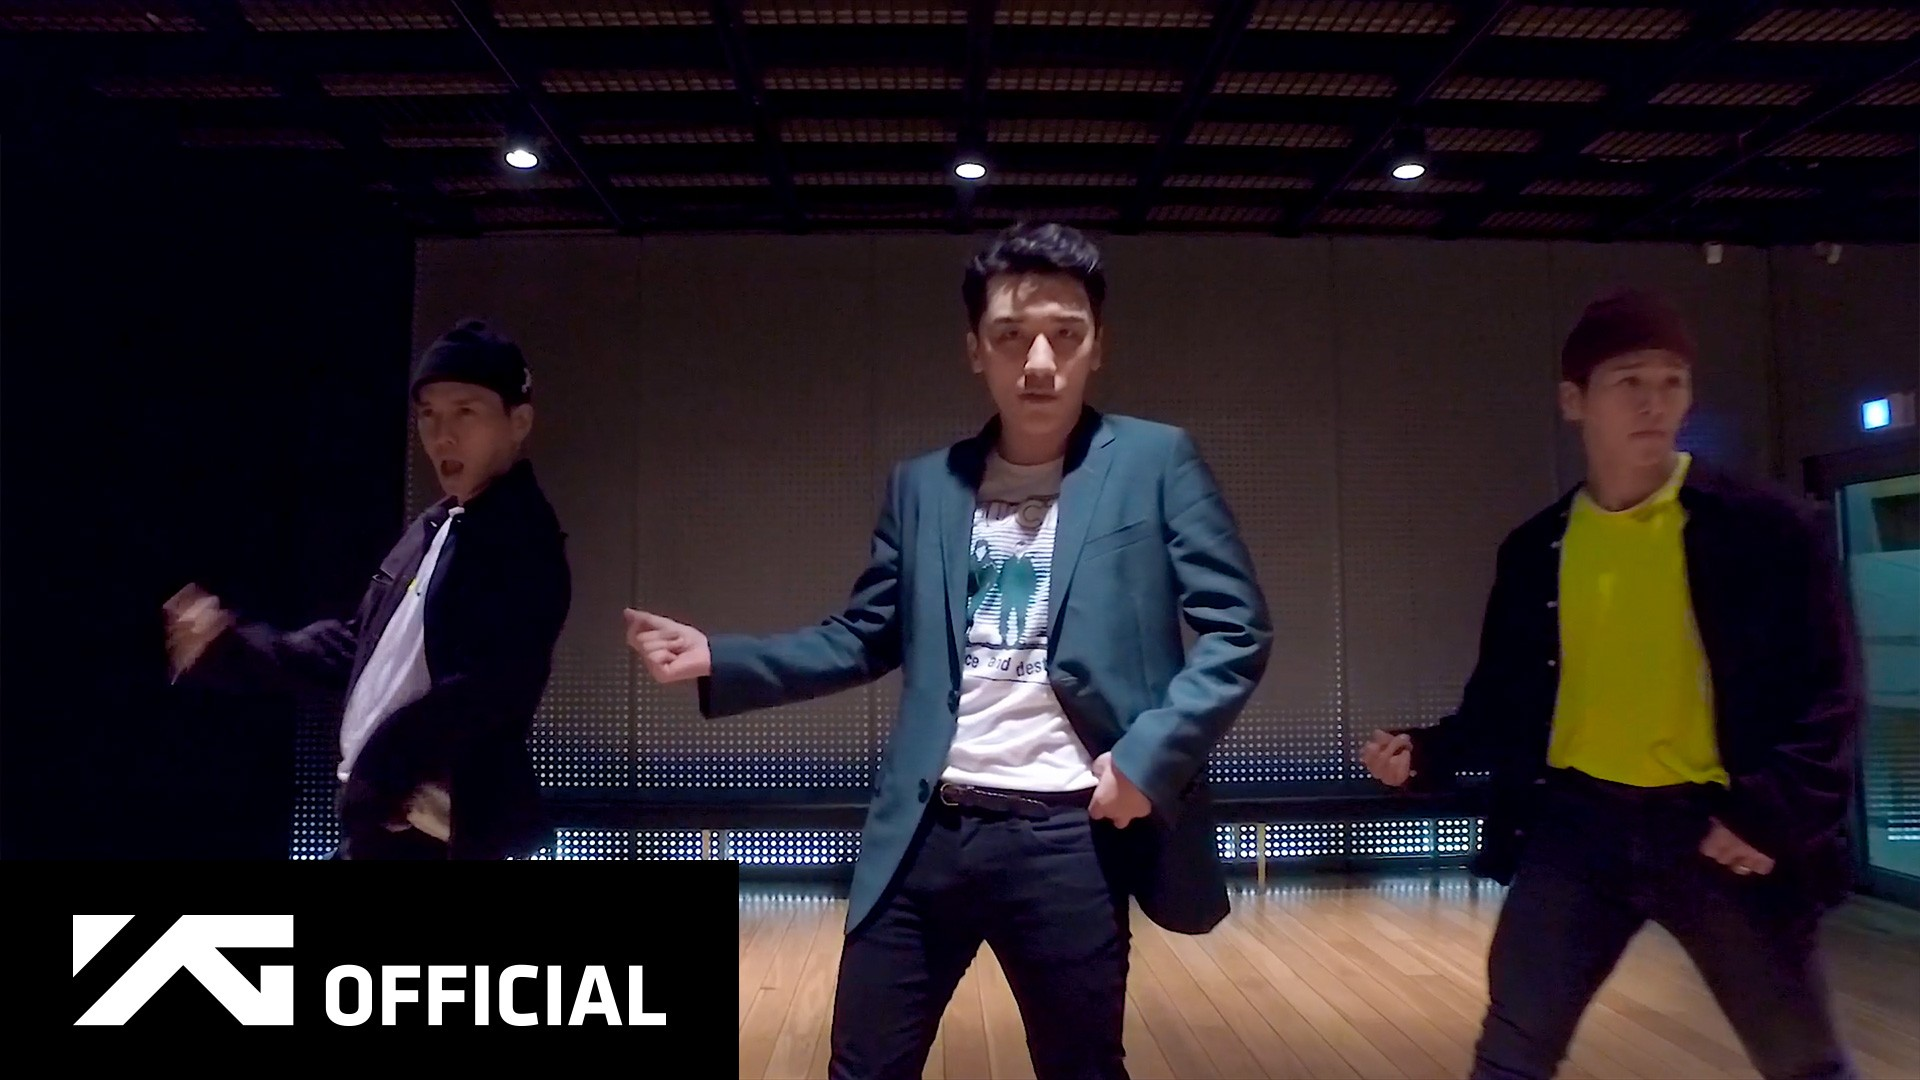 SEUNGRI - '셋 셀테니 (1, 2, 3!)' DANCE PRACTICE VIDEO (MOVING VER.)